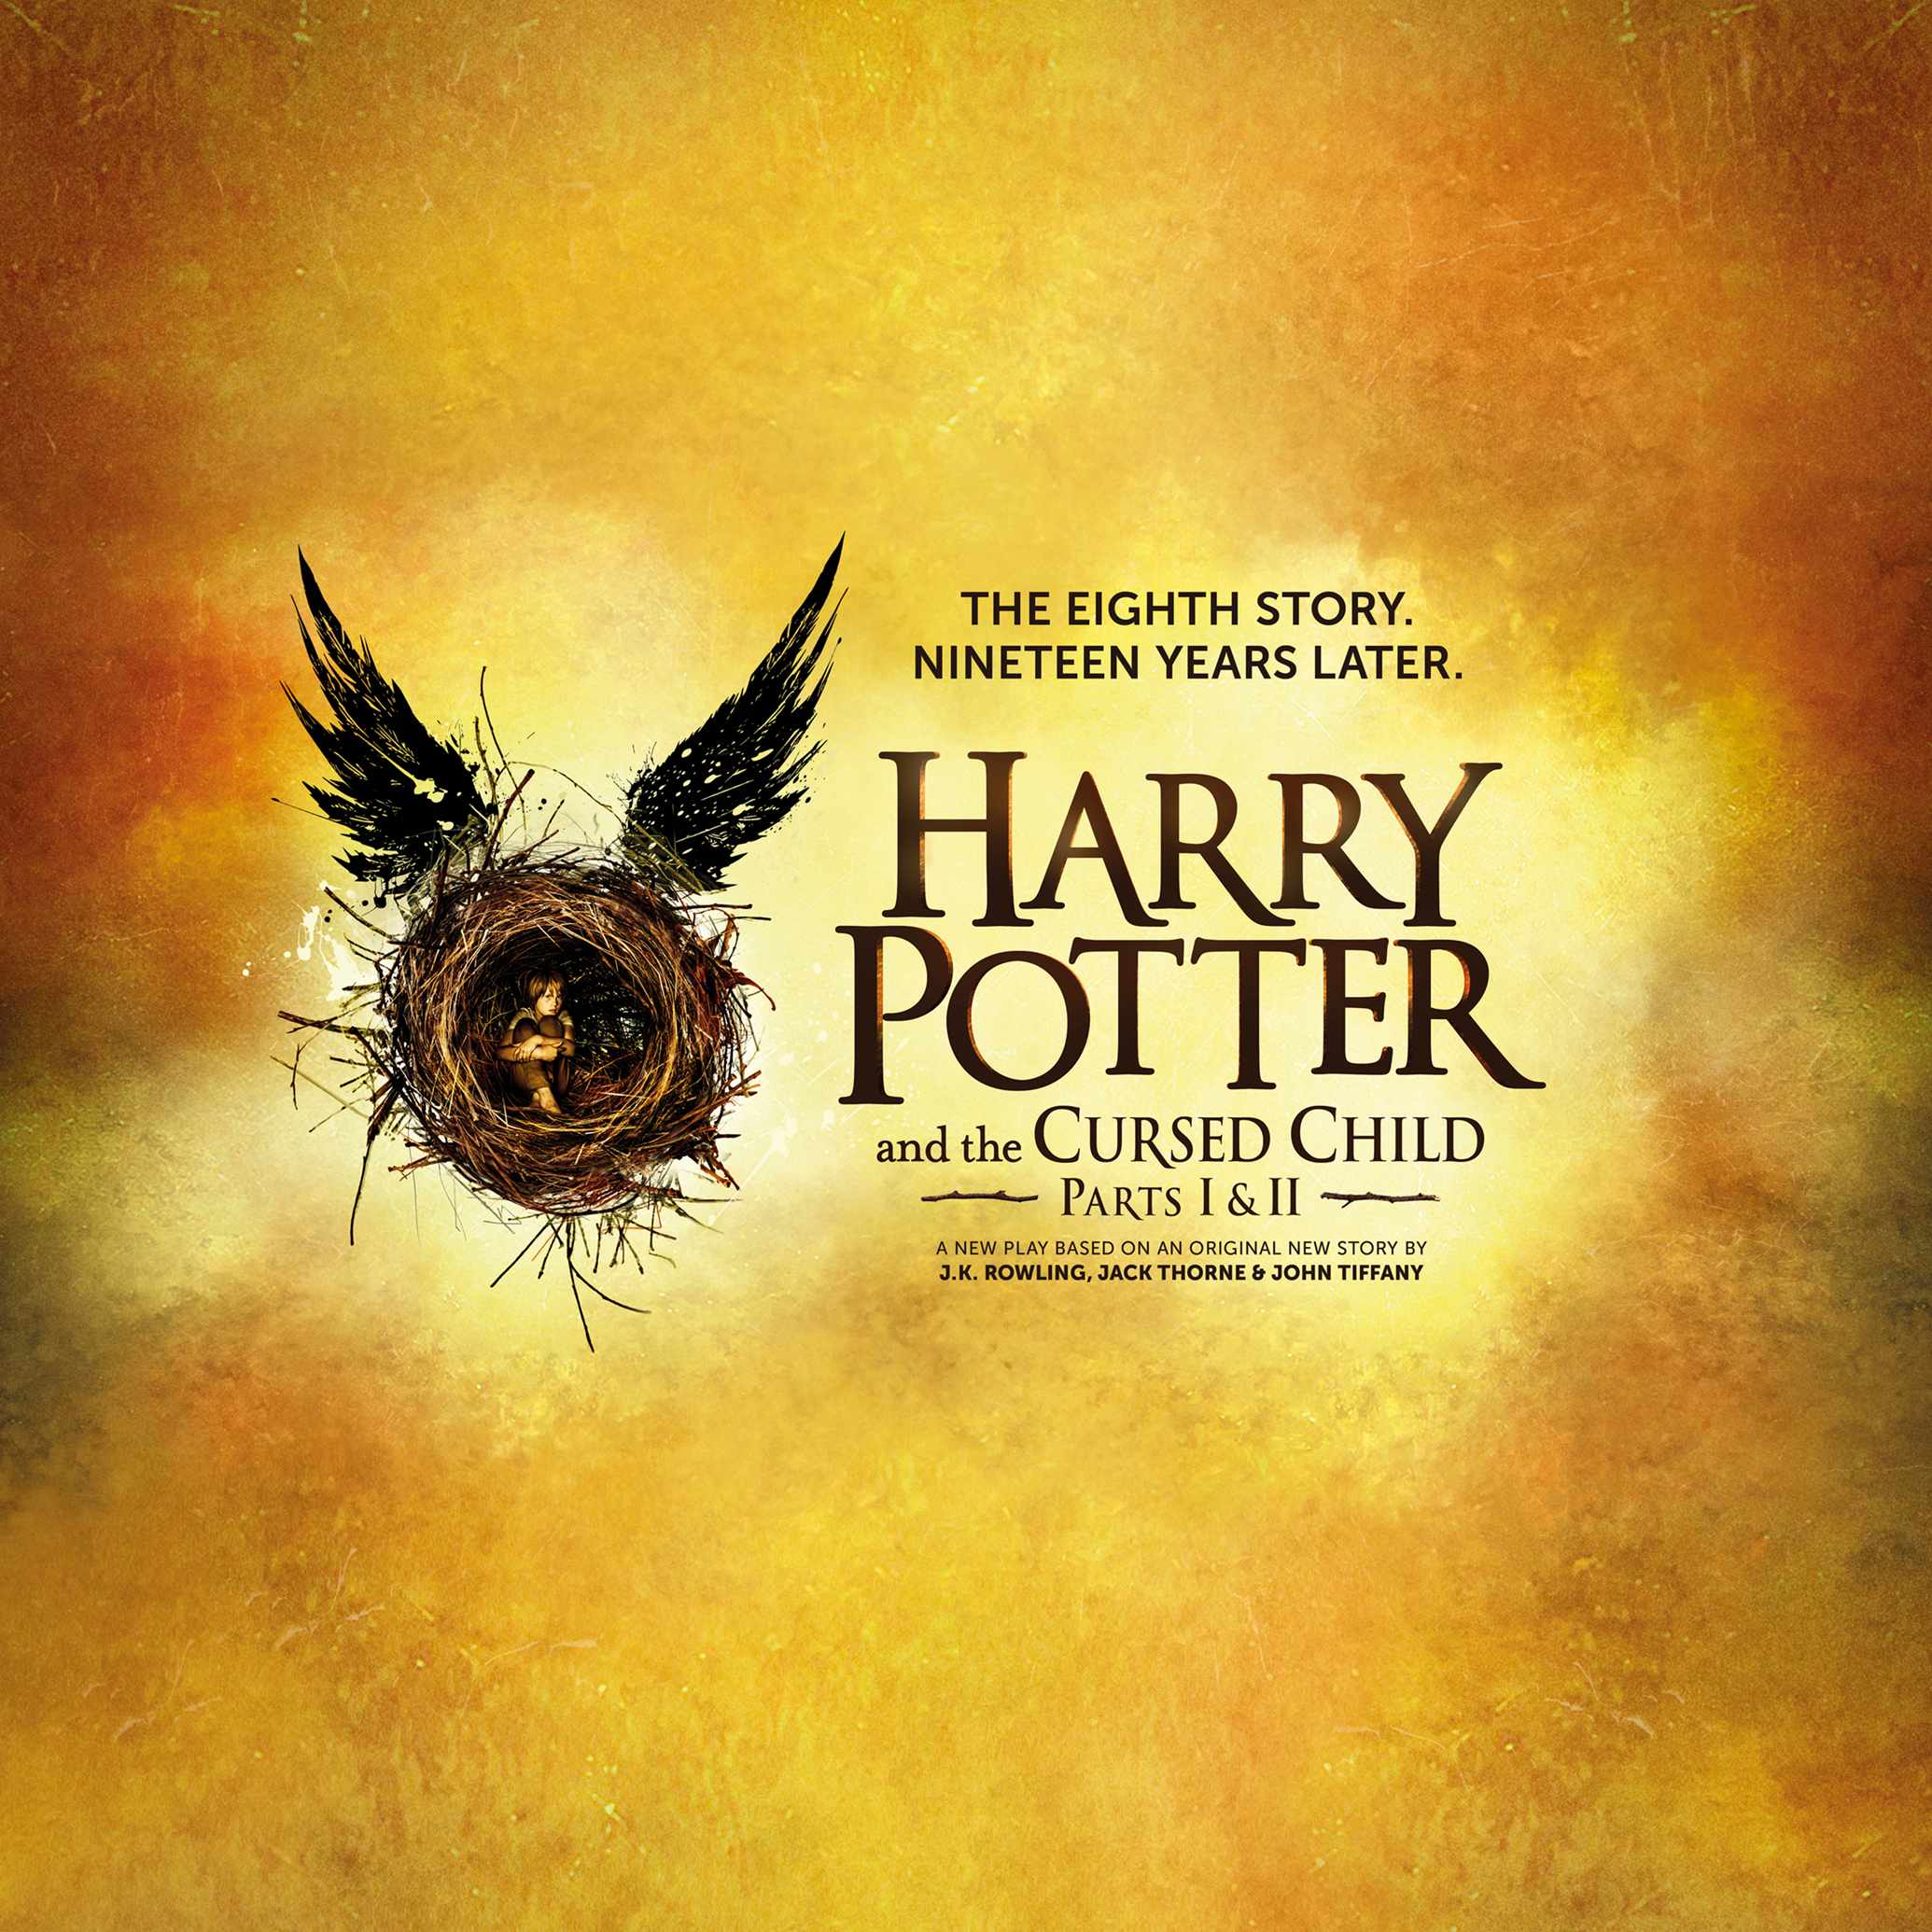 Image result for harry potter and the cursed child